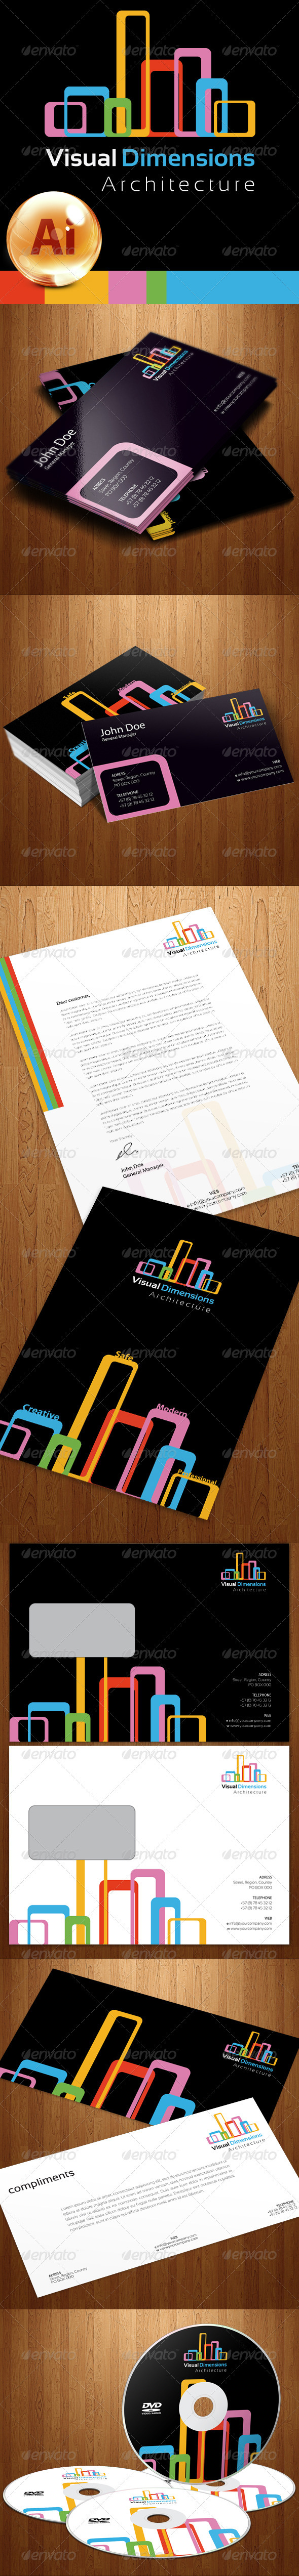 Visual Dimensions Corporate Identity - Stationery Print Templates